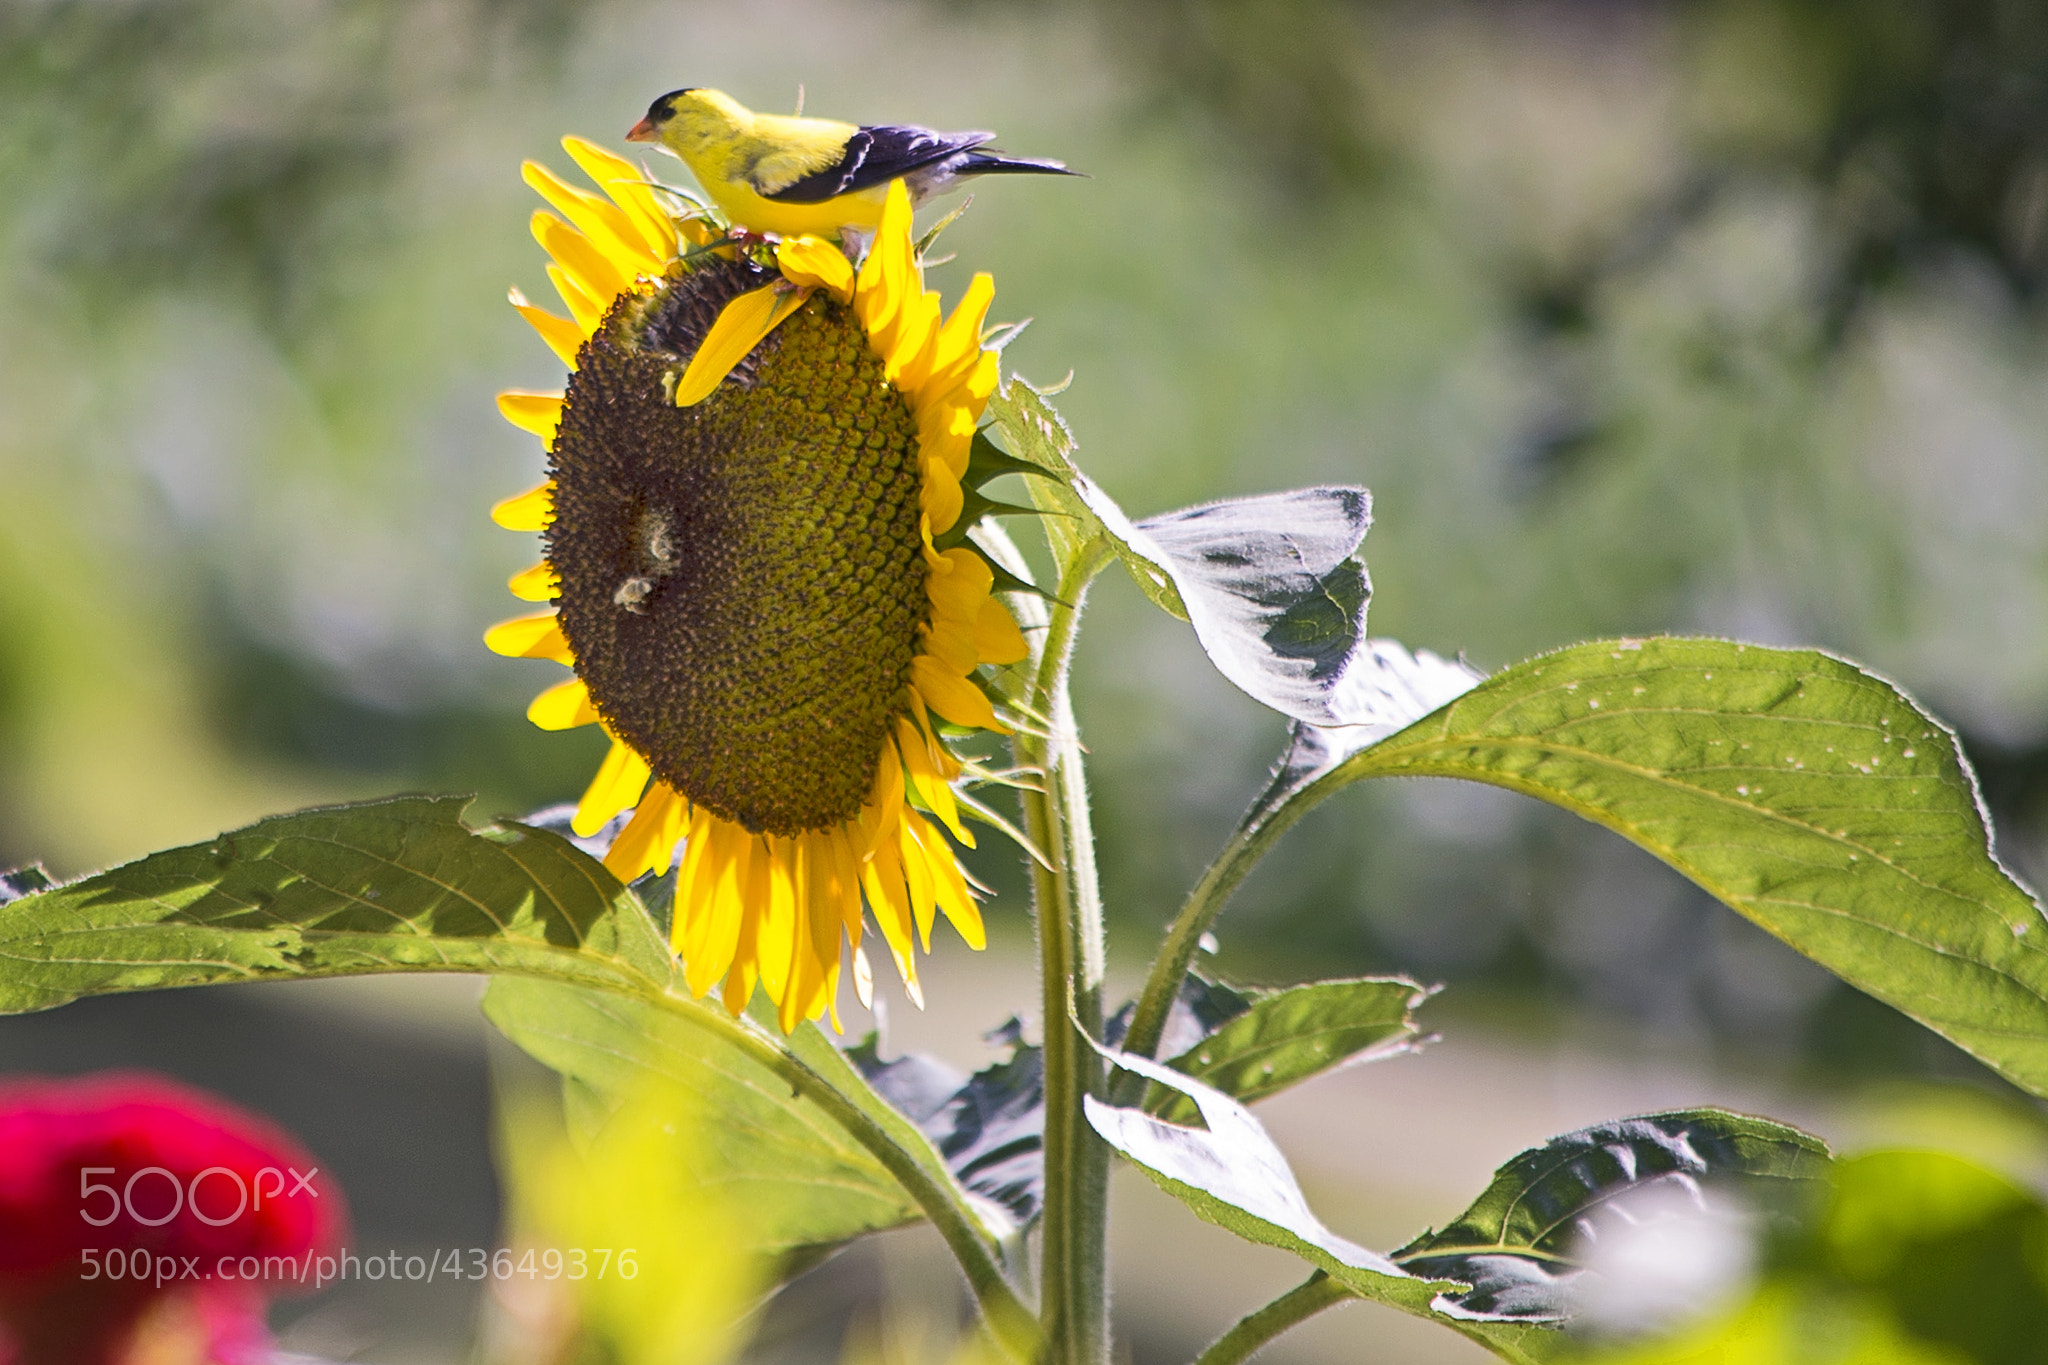 Photograph Finch on Sunflower by Heather Conley on 500px